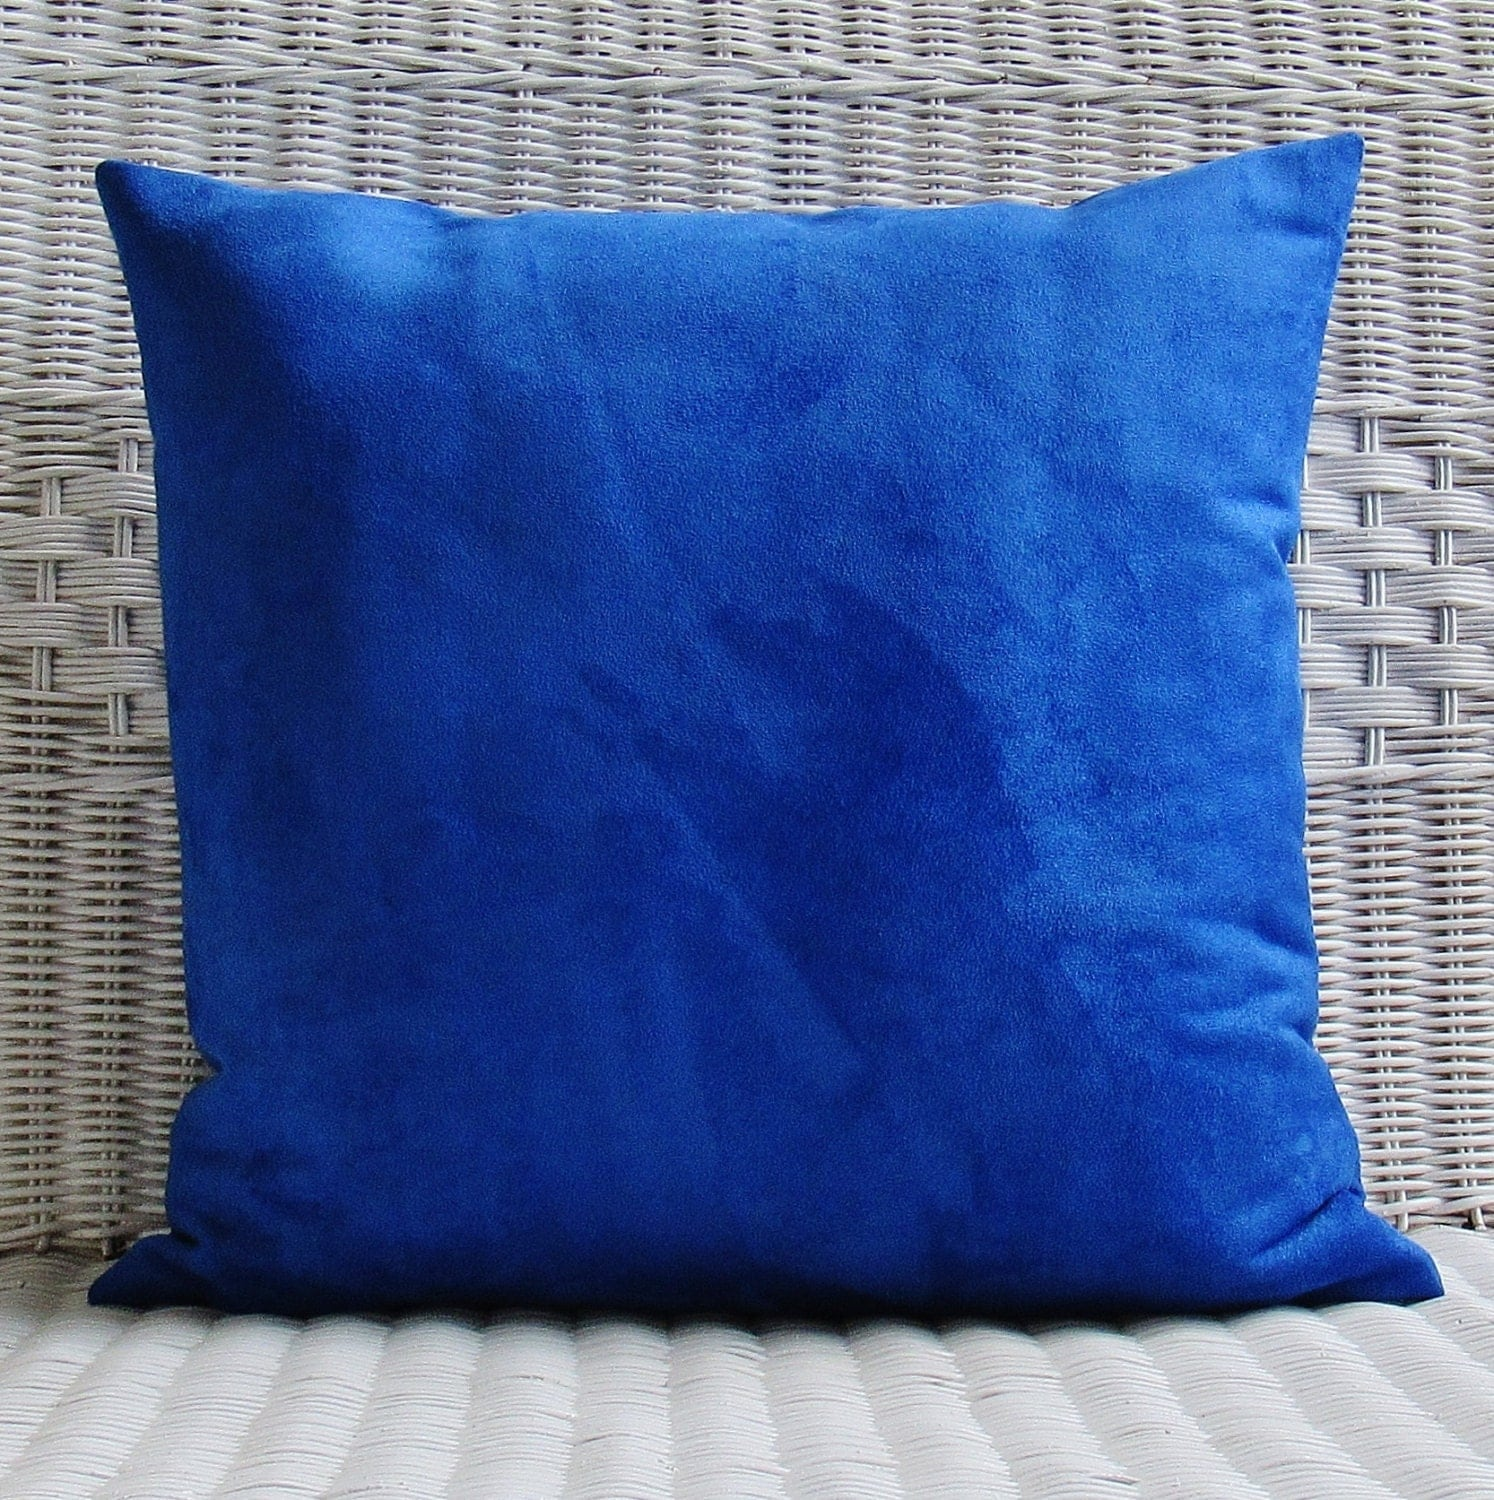 Throw Pillows Royal Blue : Cobalt Royal Blue Suede Pillow Cover Decorative Throw Accent